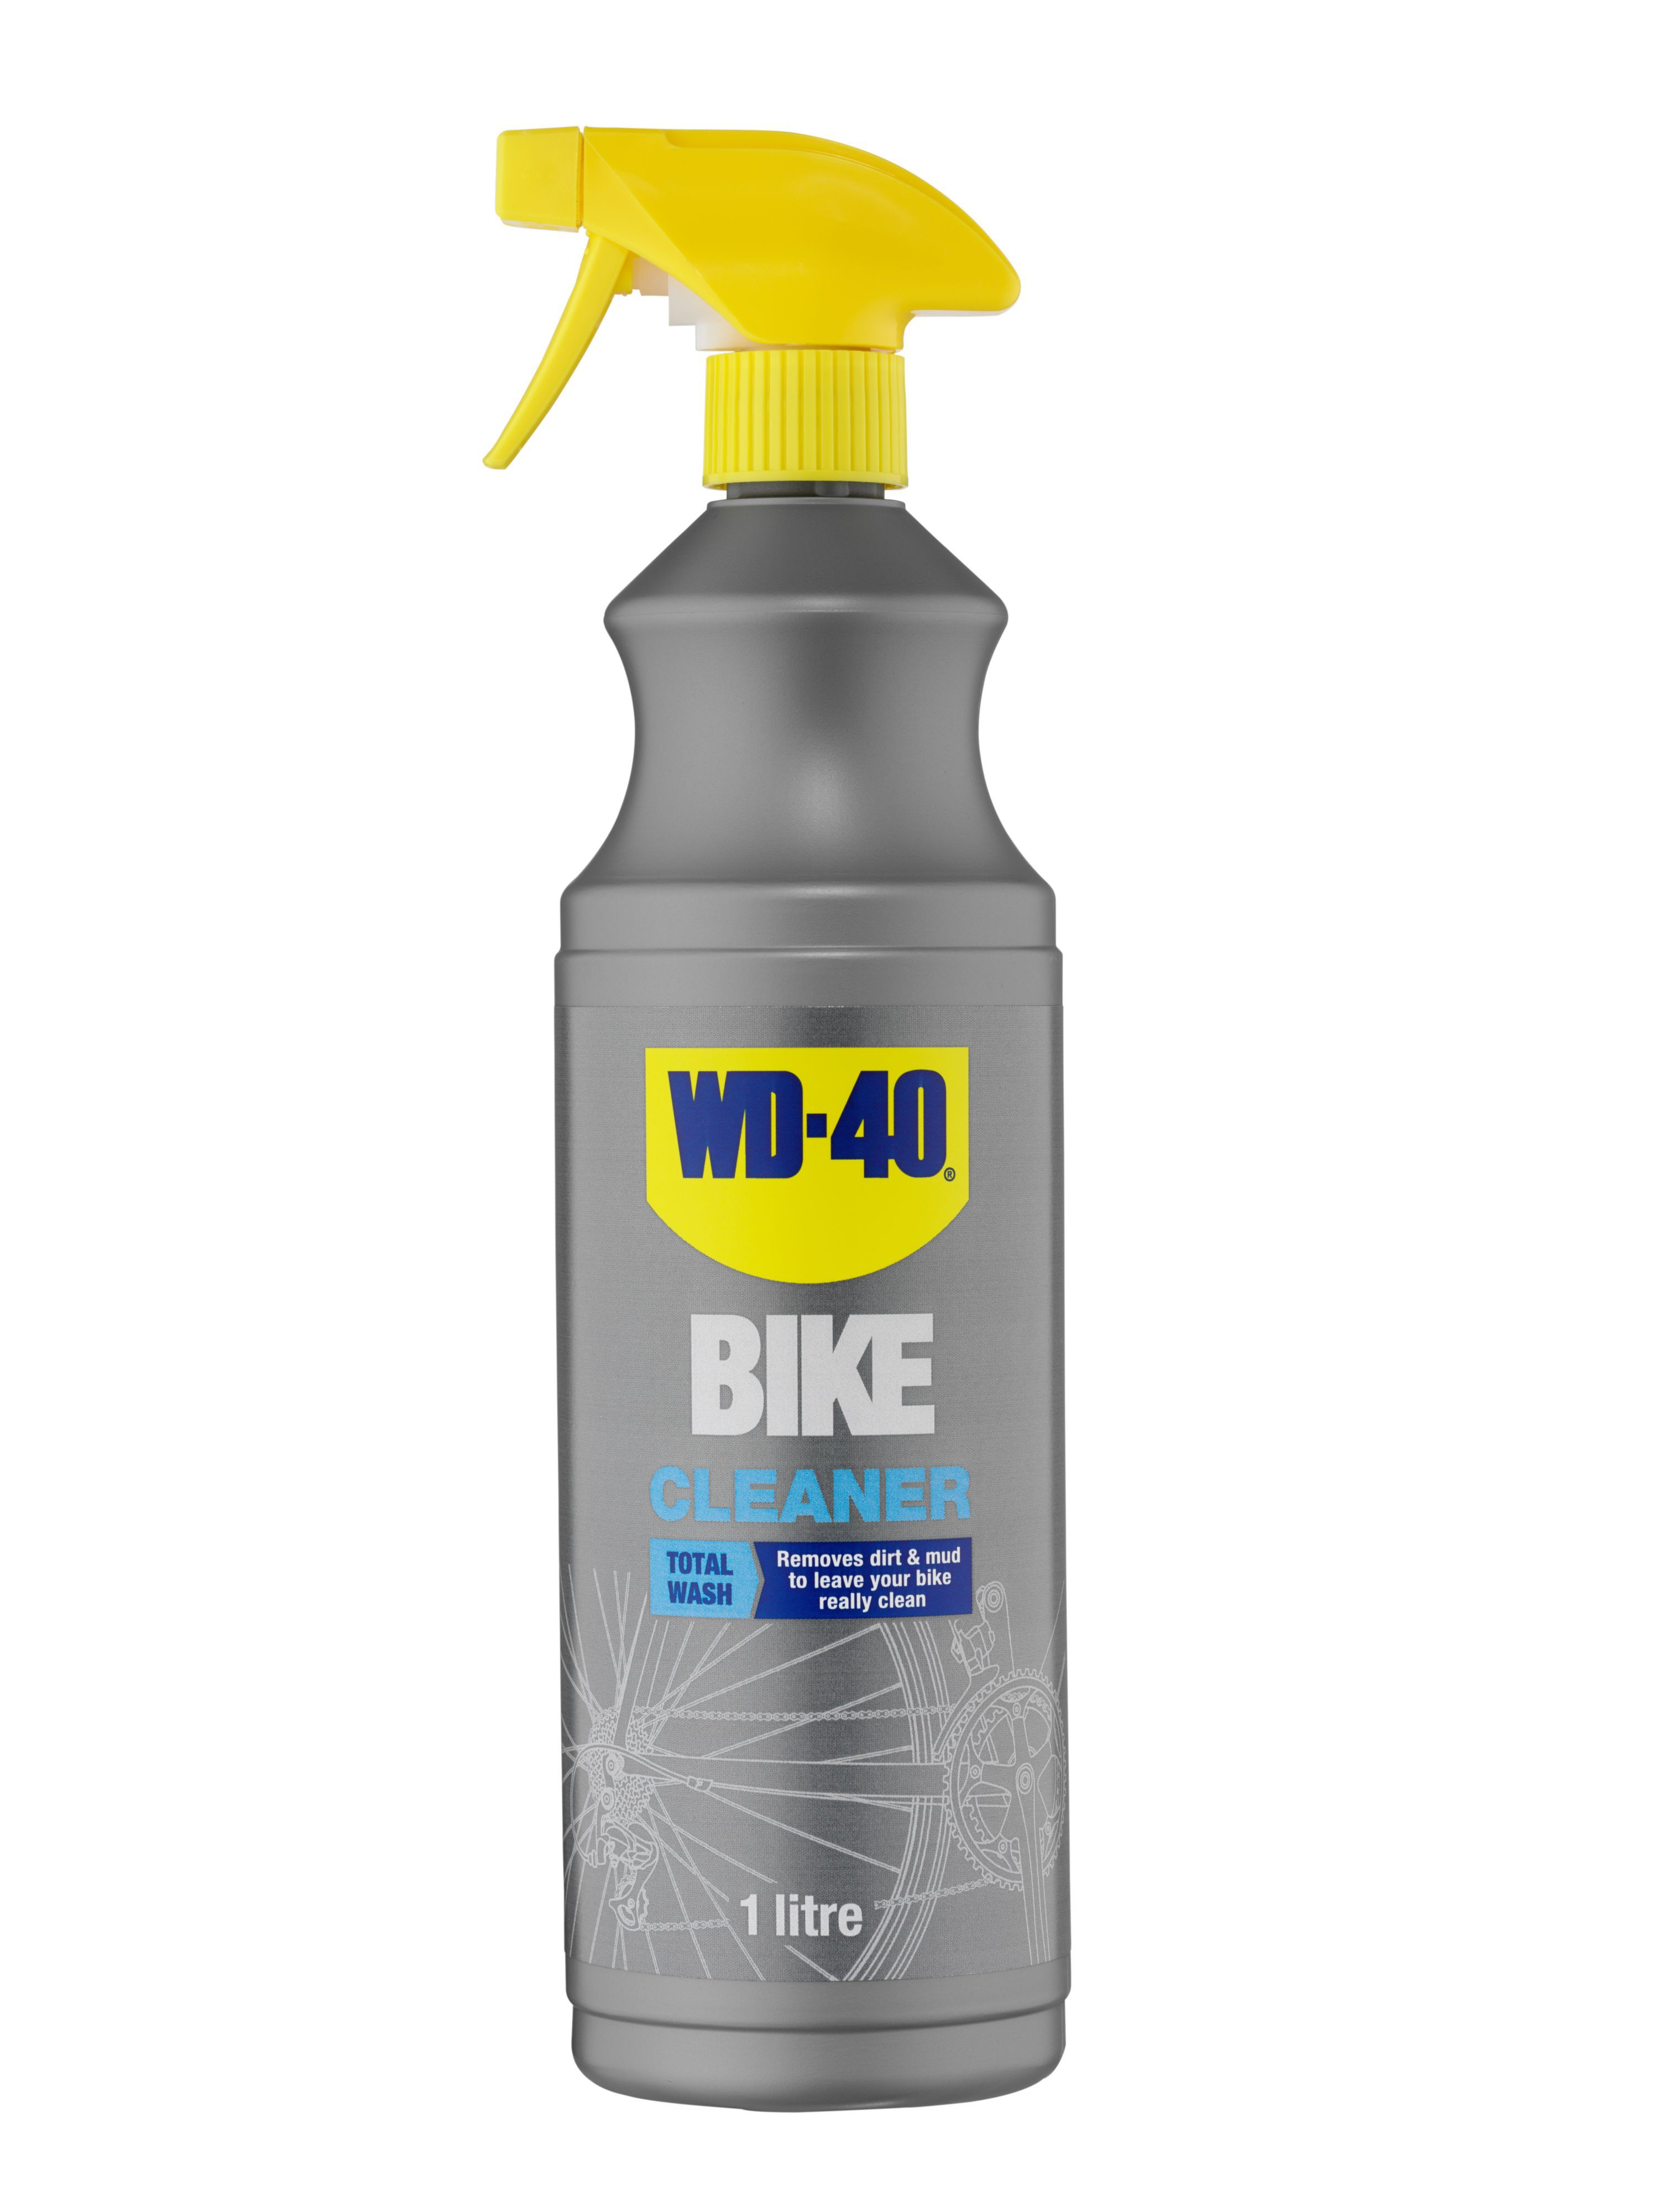 spray paint kitchen cabinets kohler purist faucet wd-40 bicycle cleaning wash trigger spray, 100 ml ...